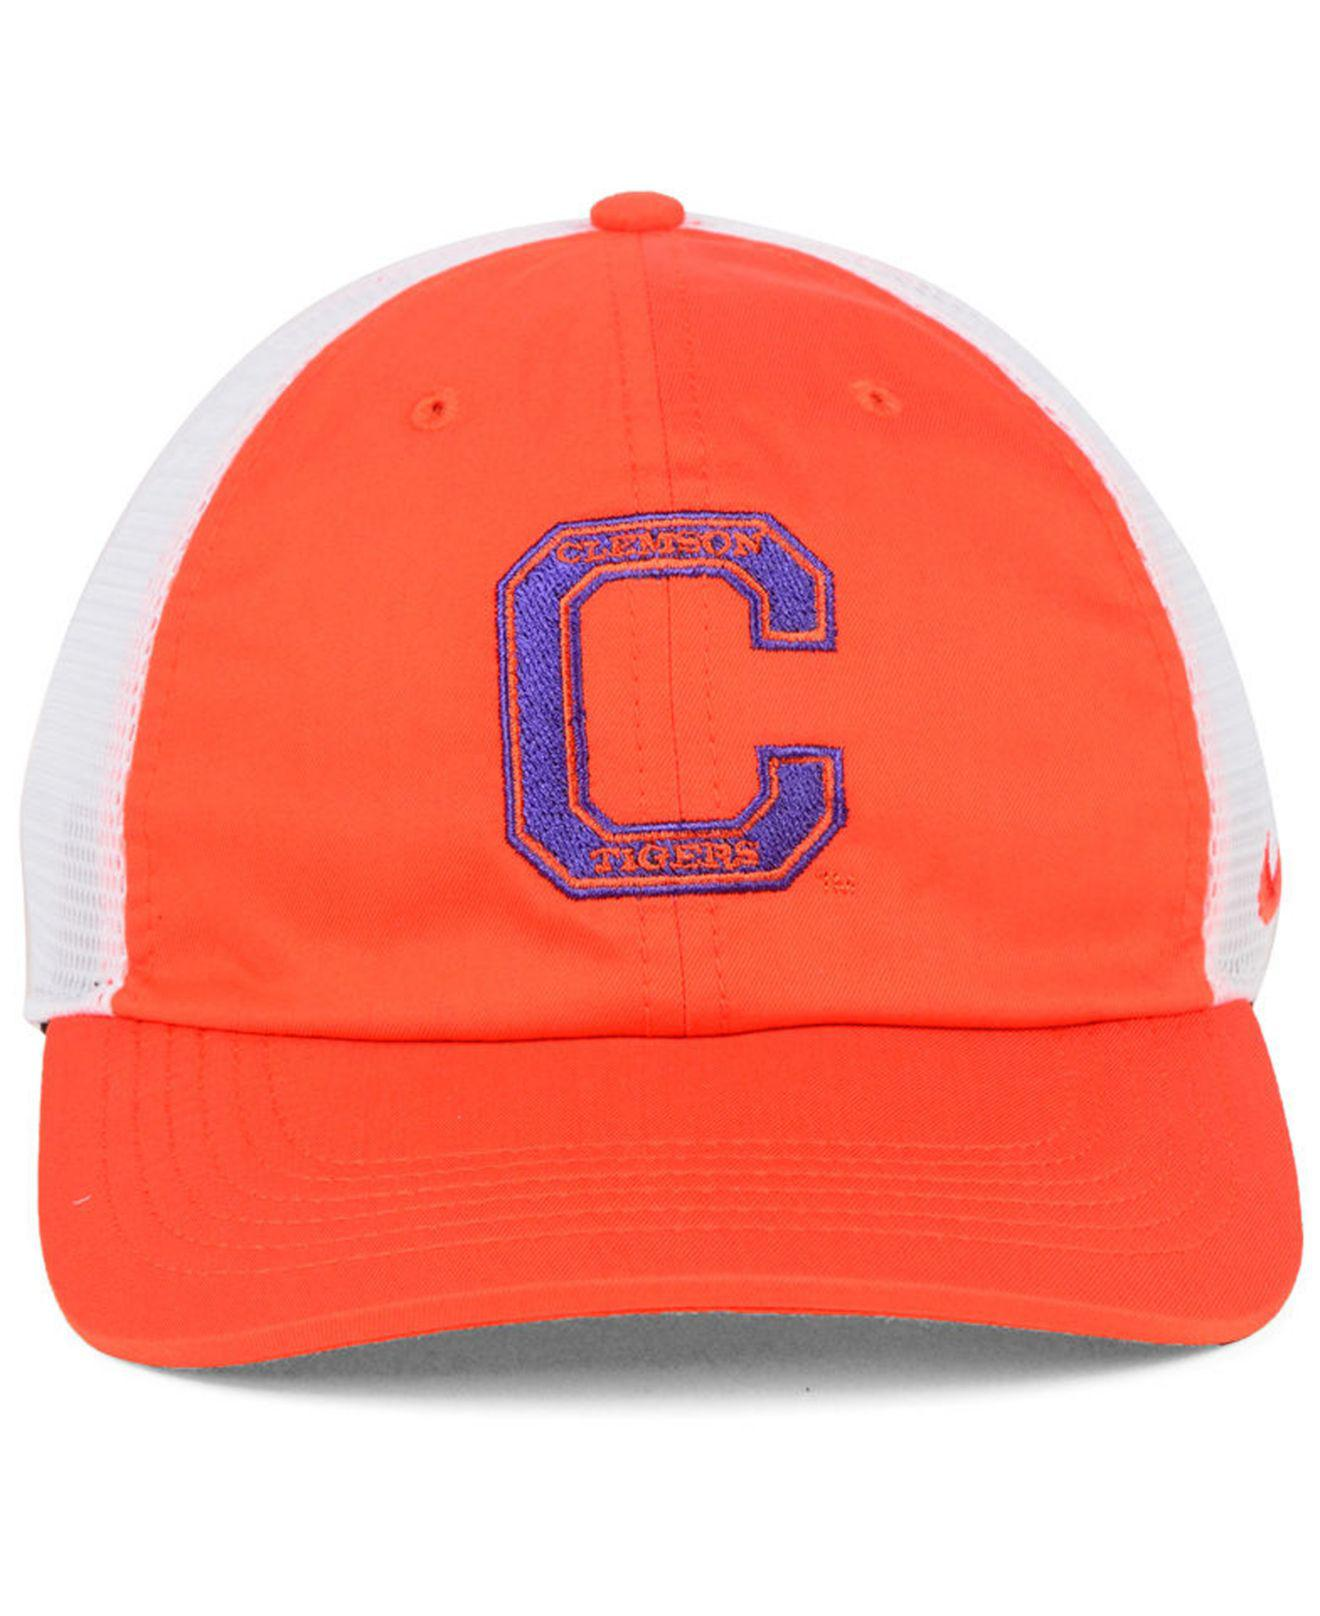 new concept ff8ec 042b5 ... italy lyst nike clemson tigers h86 trucker snapback cap in orange for  men 9e090 ab47d sweden nike mens clemson tigers orange dri fit ...